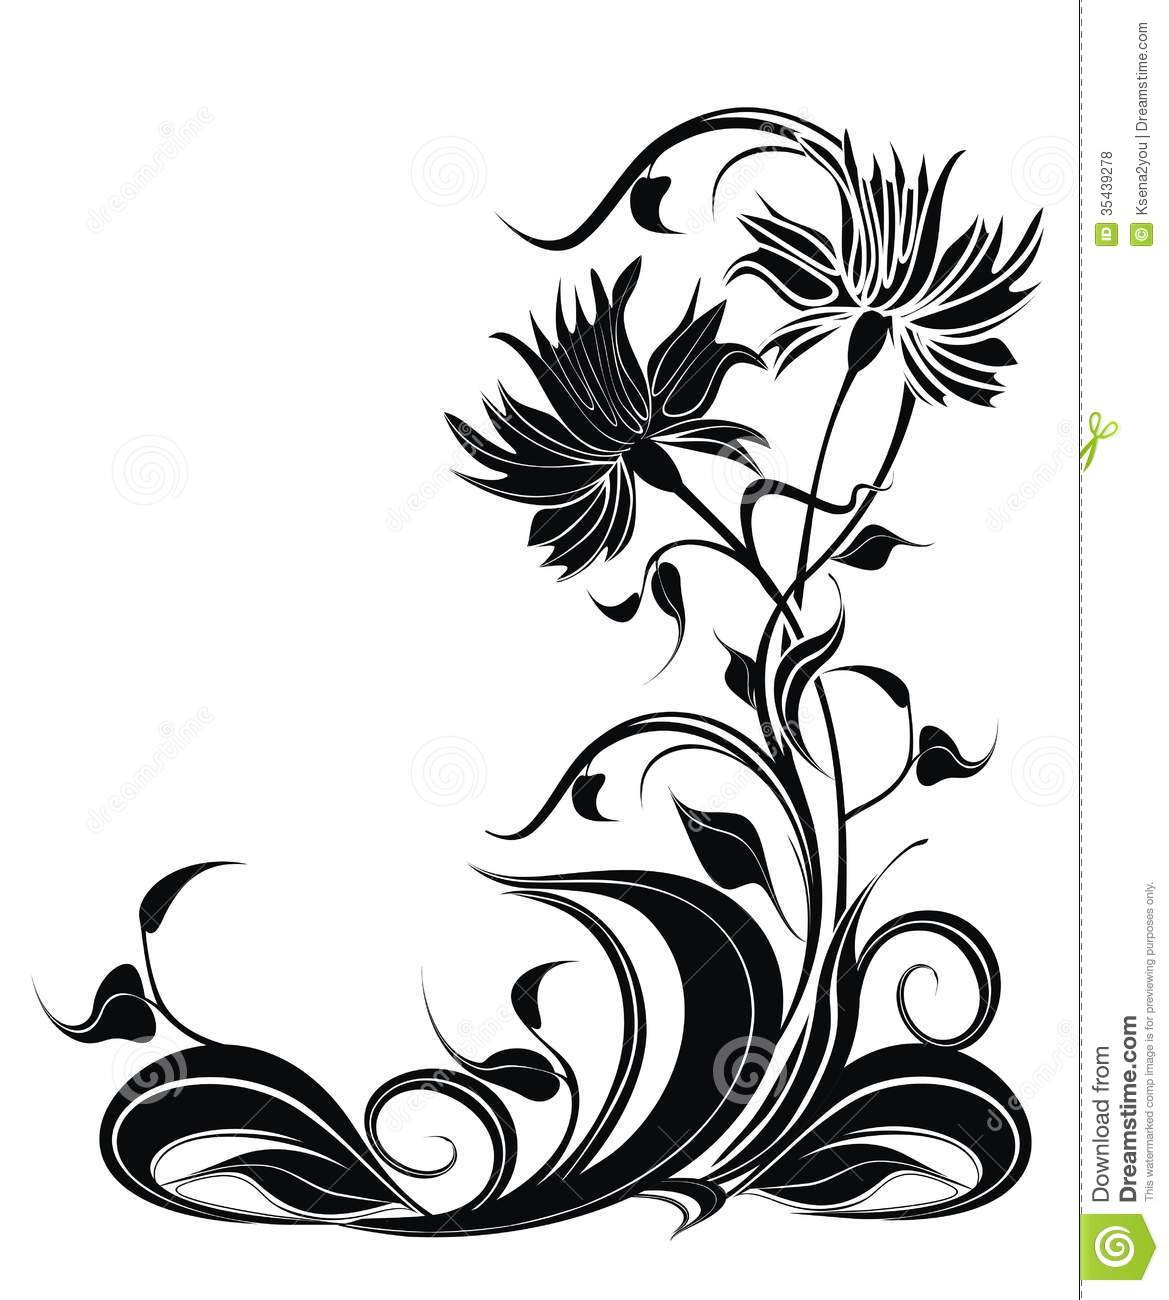 vector background with flowers in grunge style stock vector